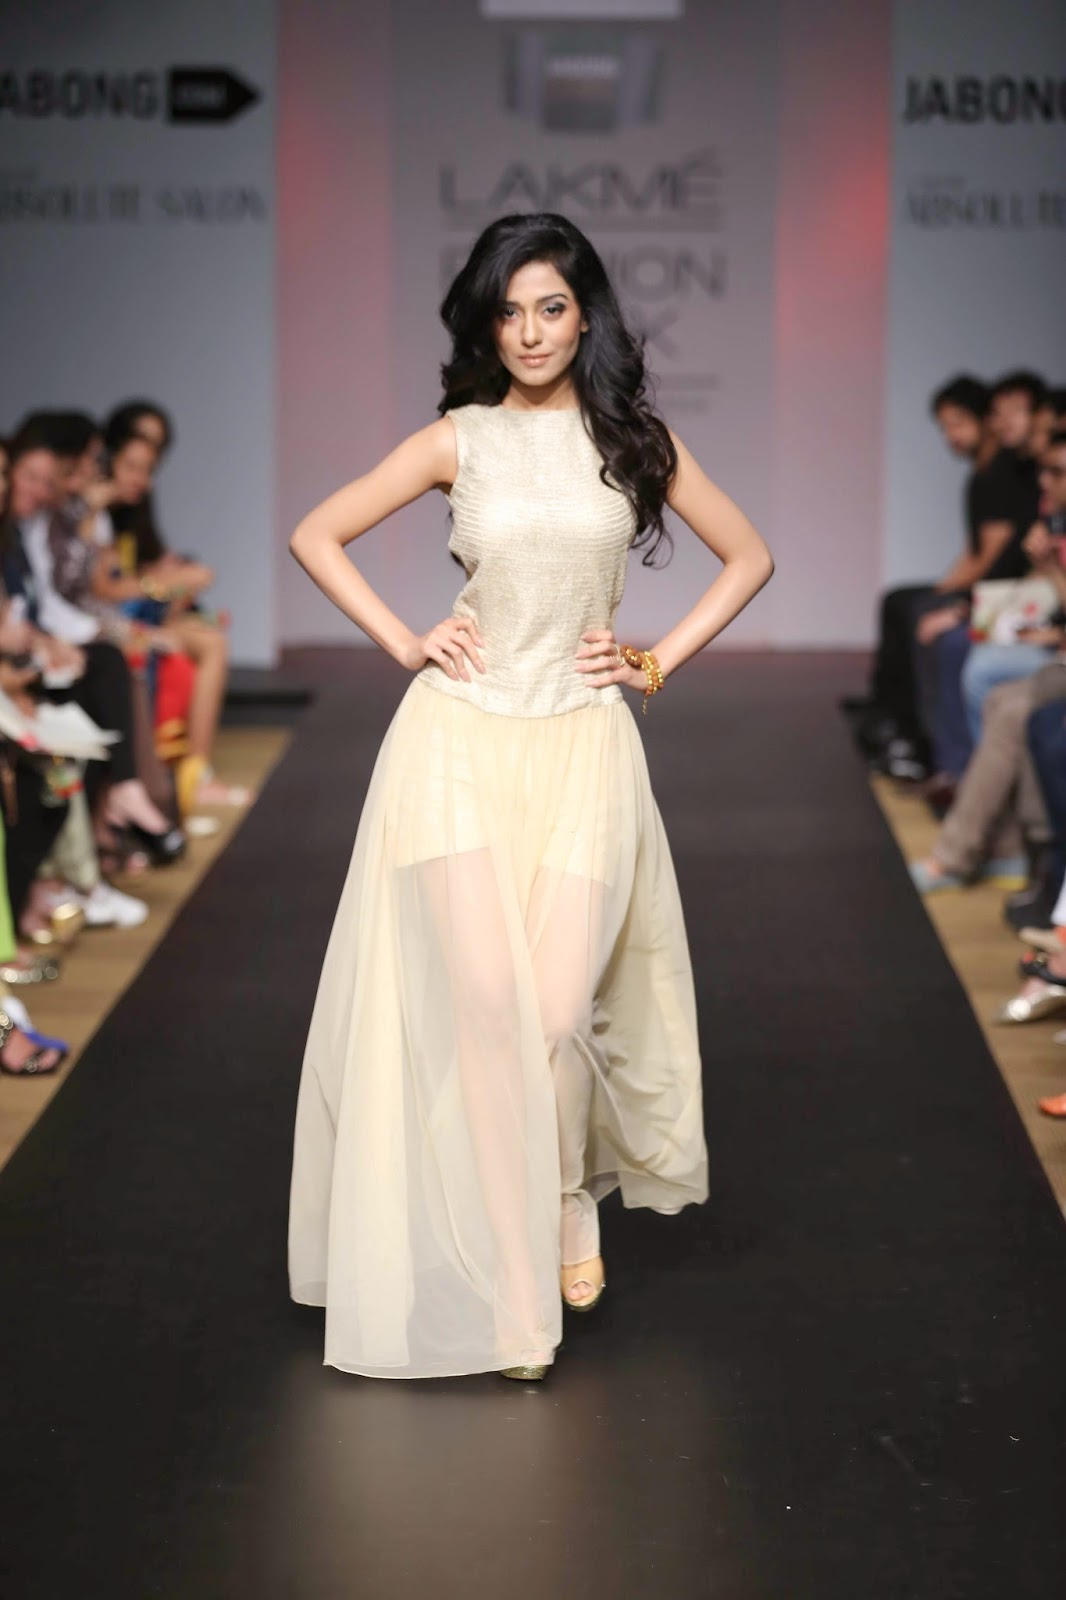 The showstopper, Bollywood star pretty and petit Amrita Rao graced the runway in a gorgeous shimmering dress with see-through material used for gathers at the bottom.